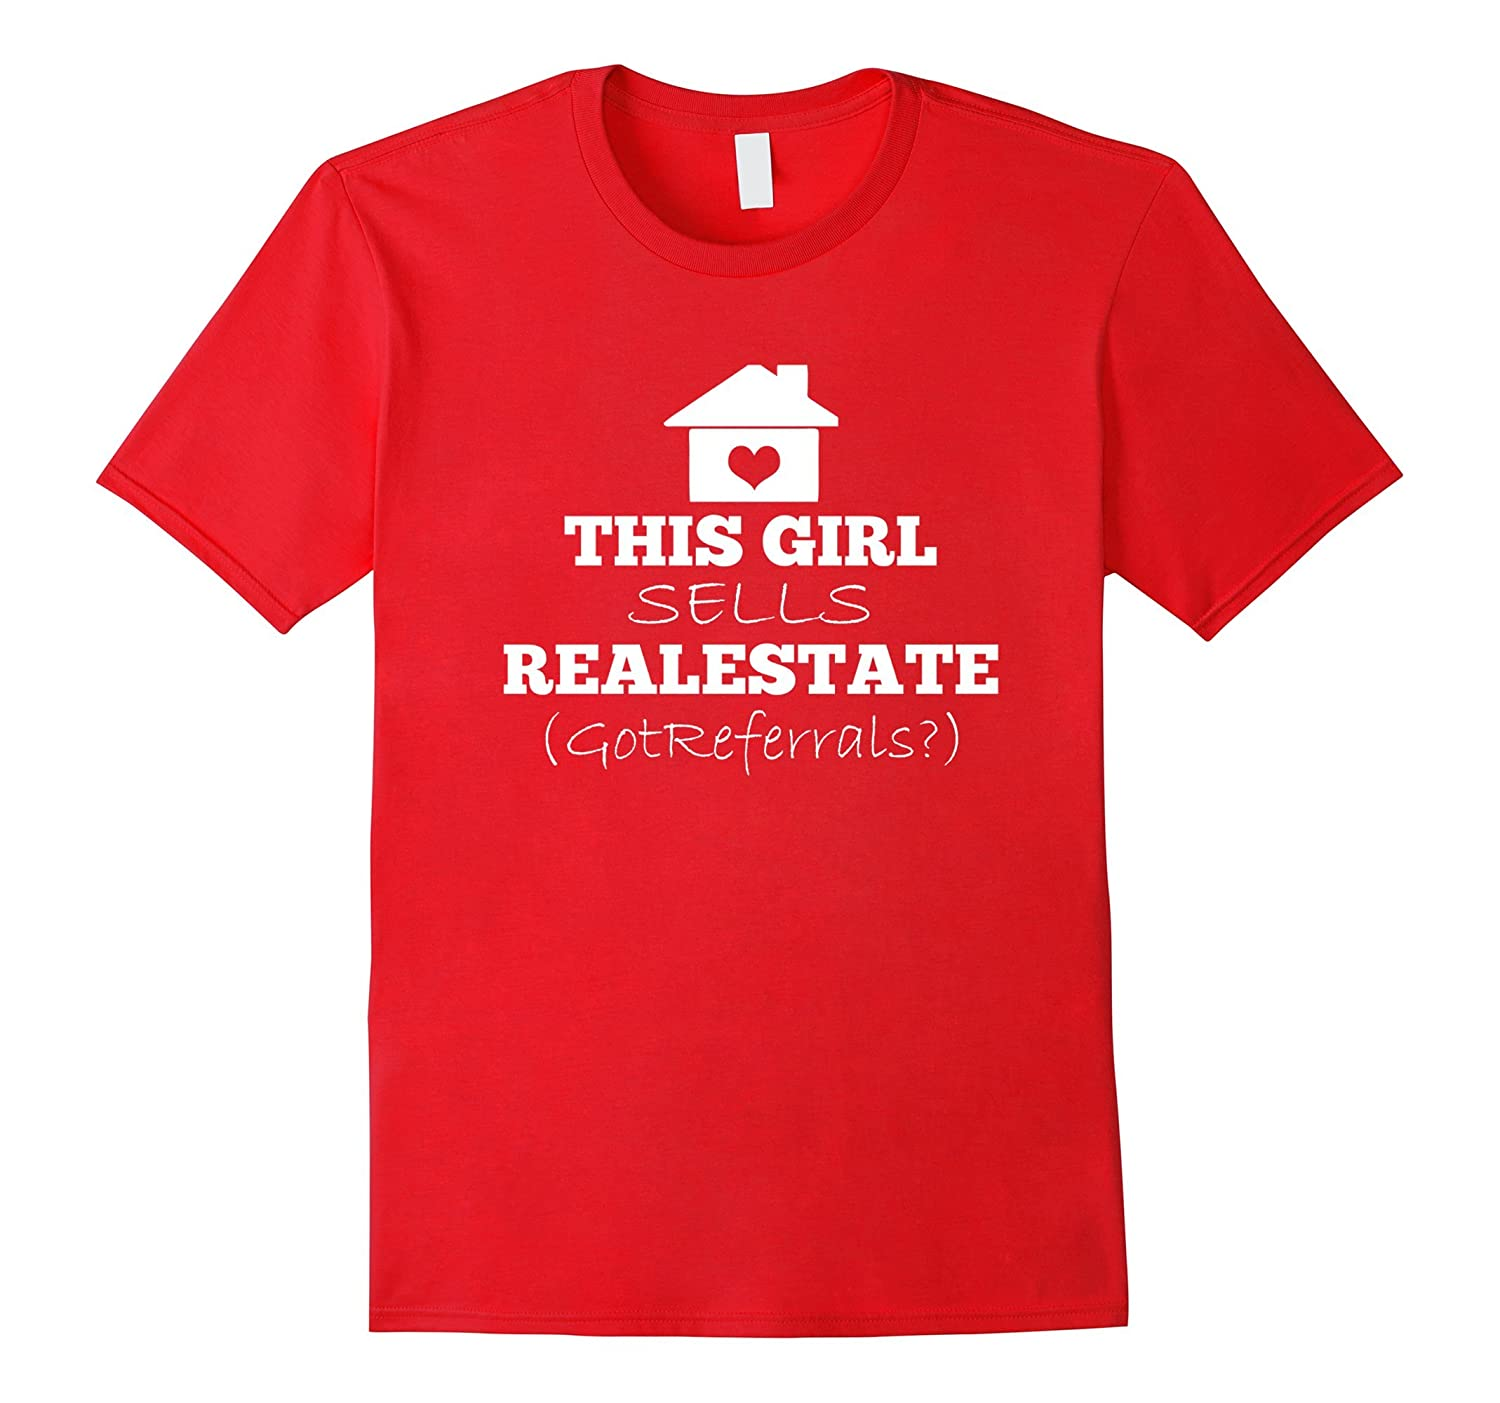 Funny T-Shirt - This Girl Sells Real Estate-BN